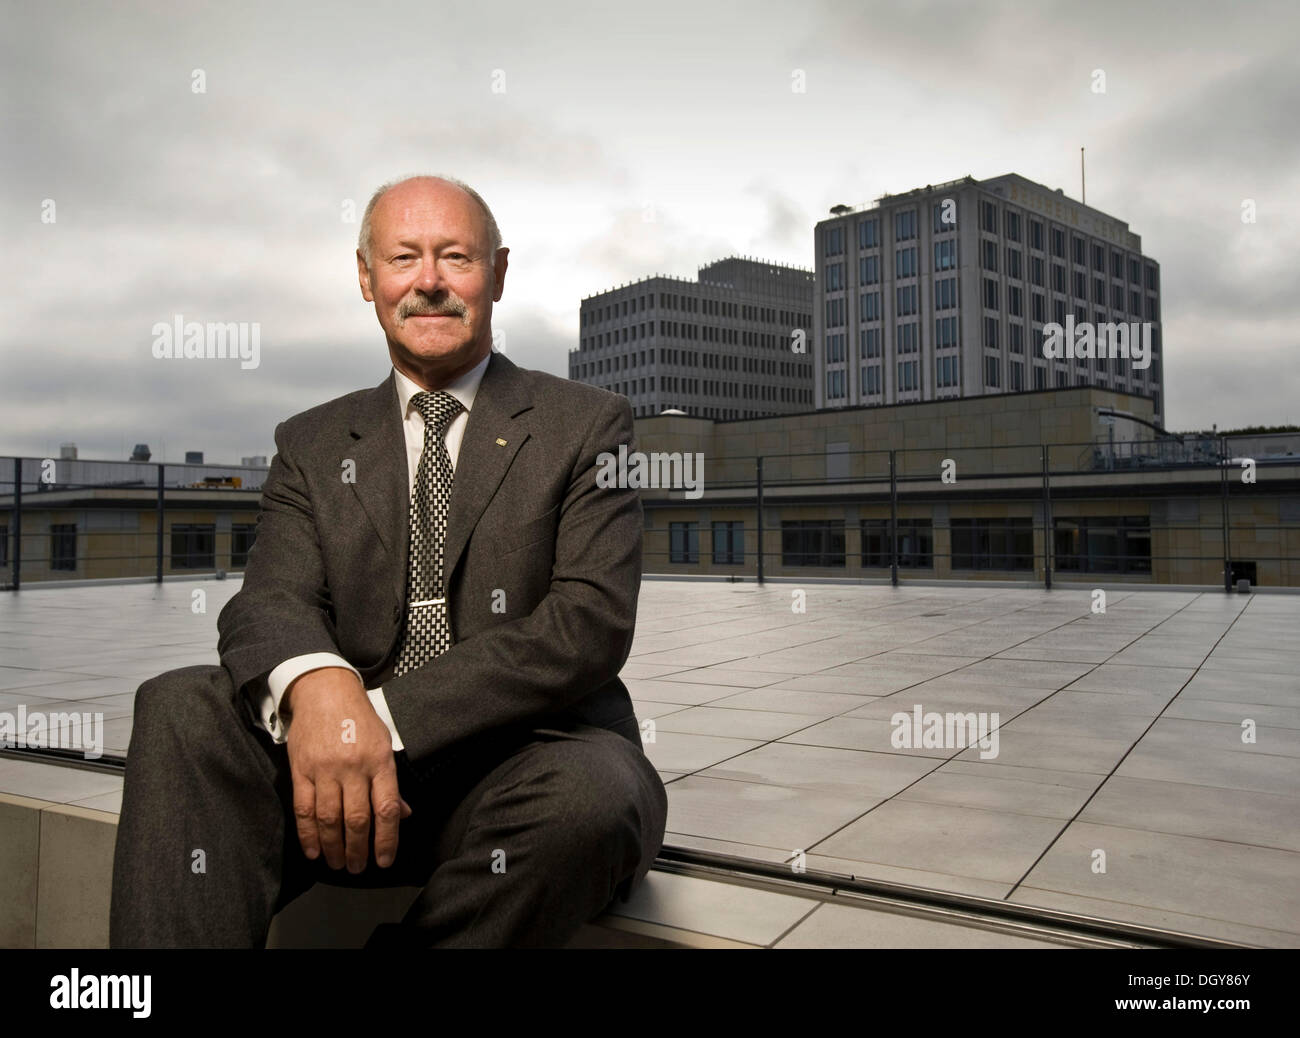 Karl-Heinz Boos, CEO of the Federal Association of Public Banks in Germany or VOeB, Berlin - Stock Image